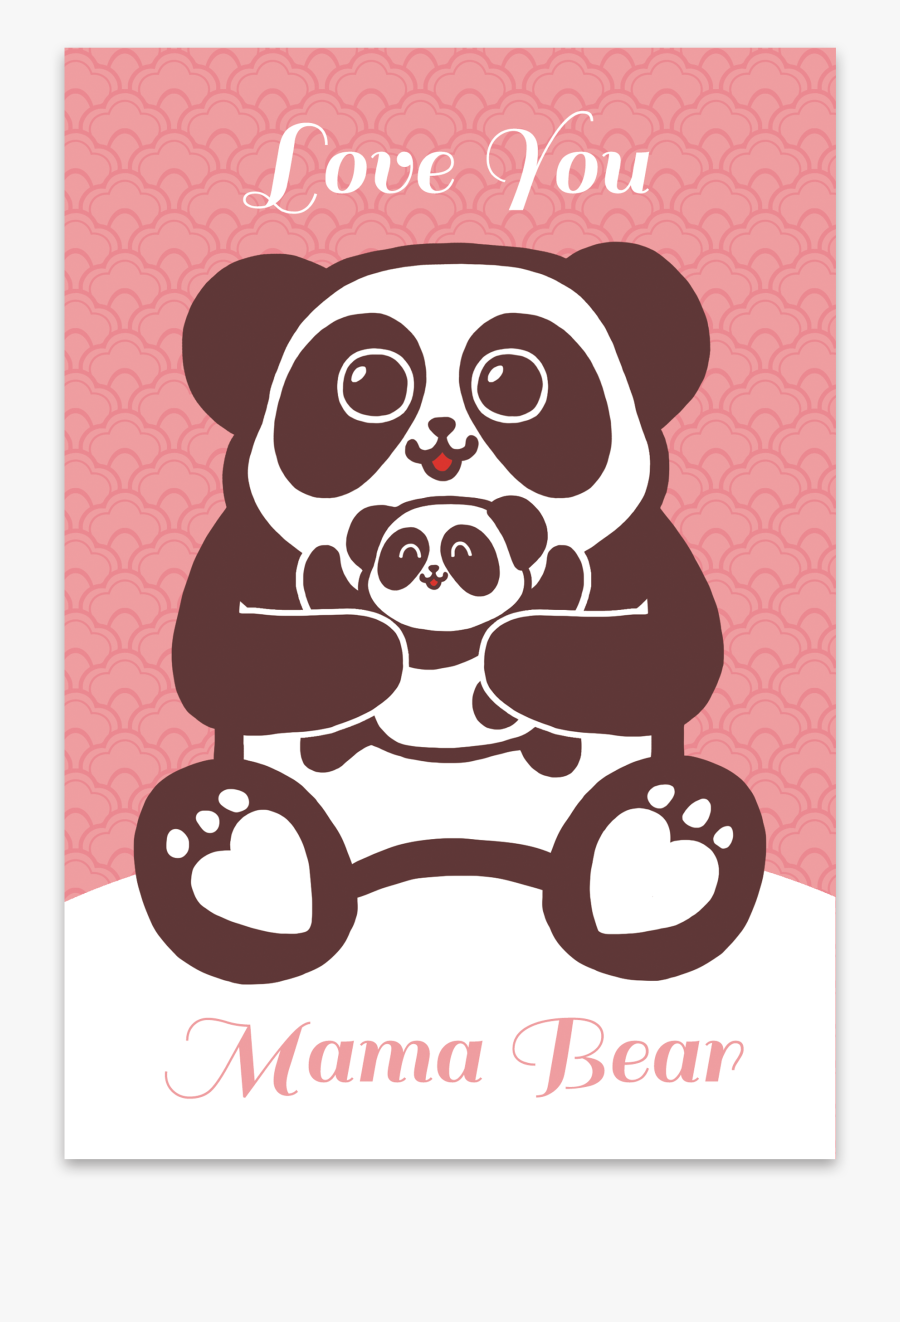 Hong Kong Gift Present Hk Themed Mothers Day Card - Love You Mama Bear, Transparent Clipart